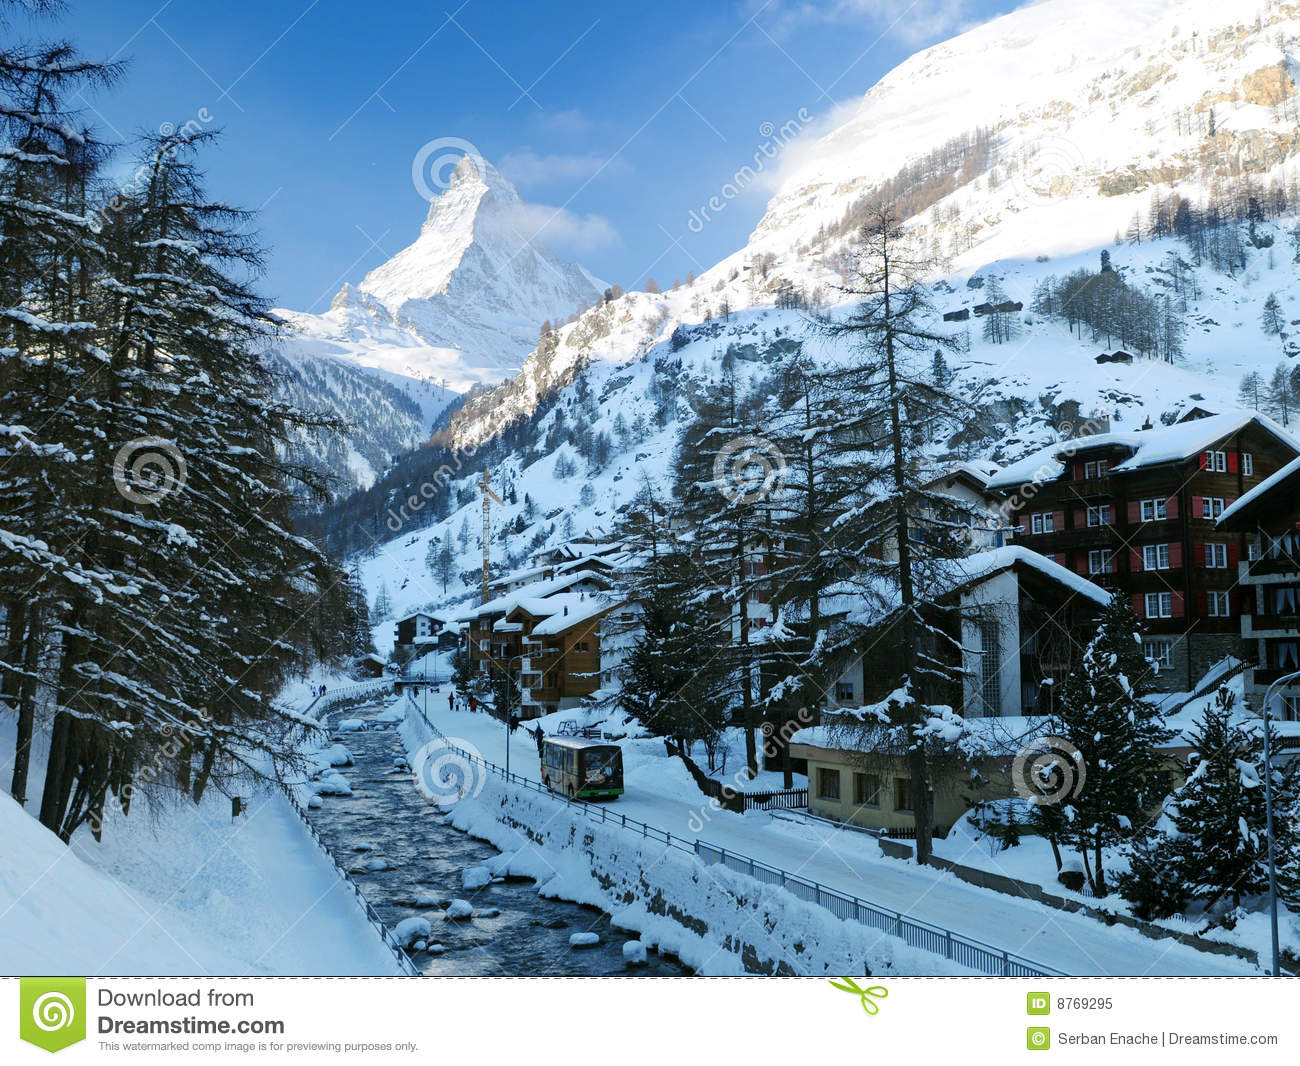 Zermatt Village Winter Scene Royalty Free Stock Photo - Image: 8769295